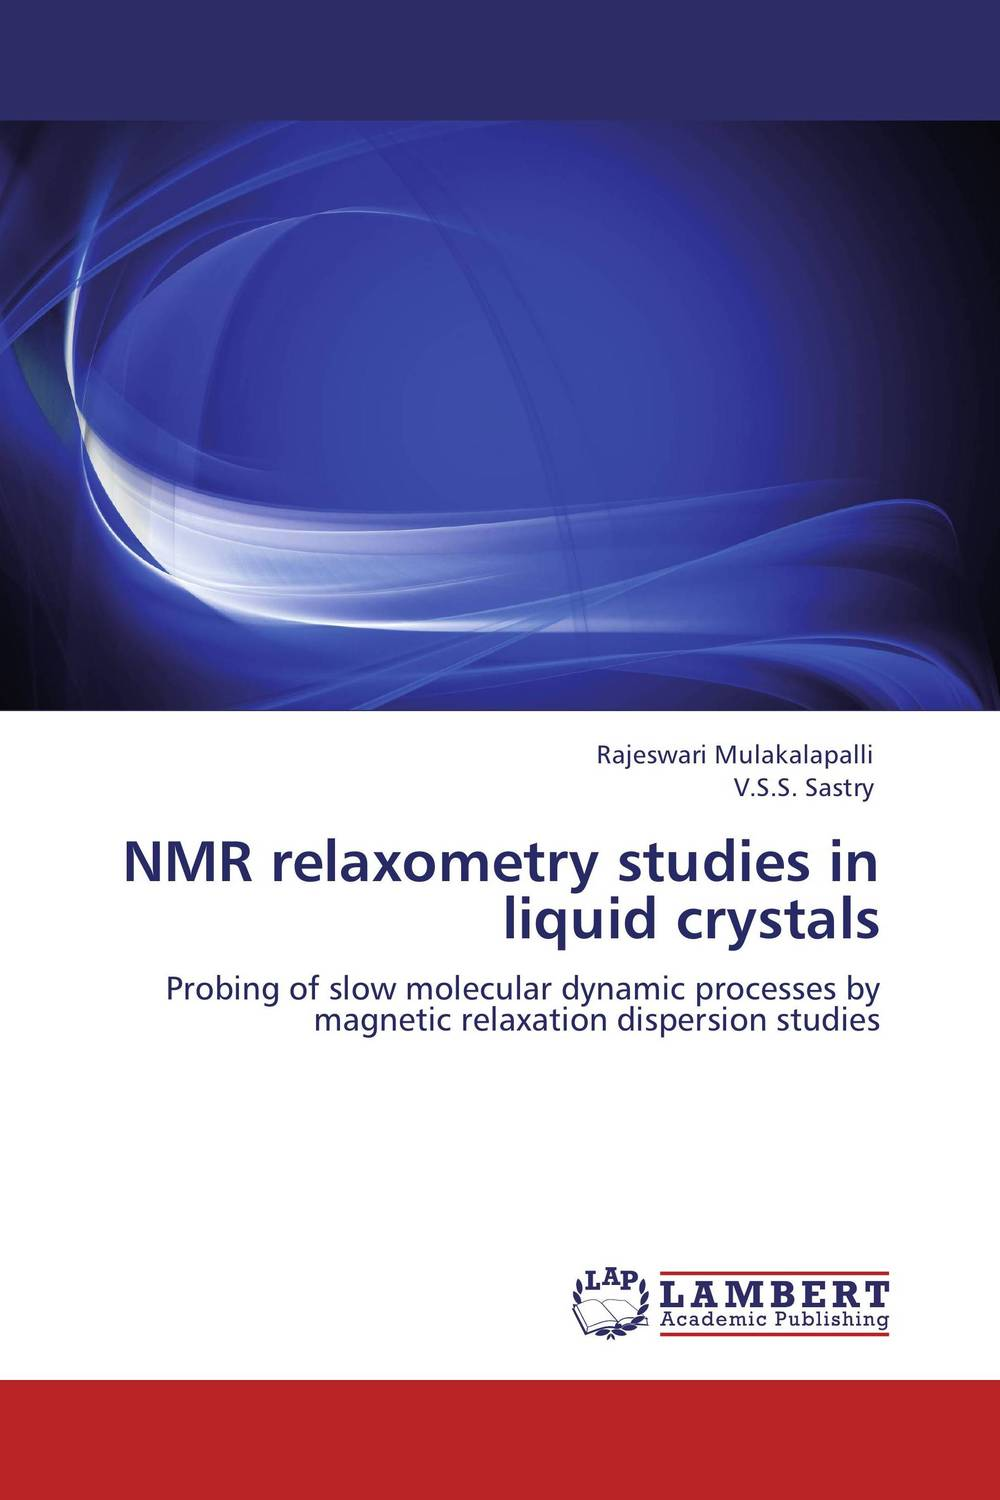 NMR relaxometry studies in liquid crystals purnima sareen sundeep kumar and rakesh singh molecular and pathological characterization of slow rusting in wheat